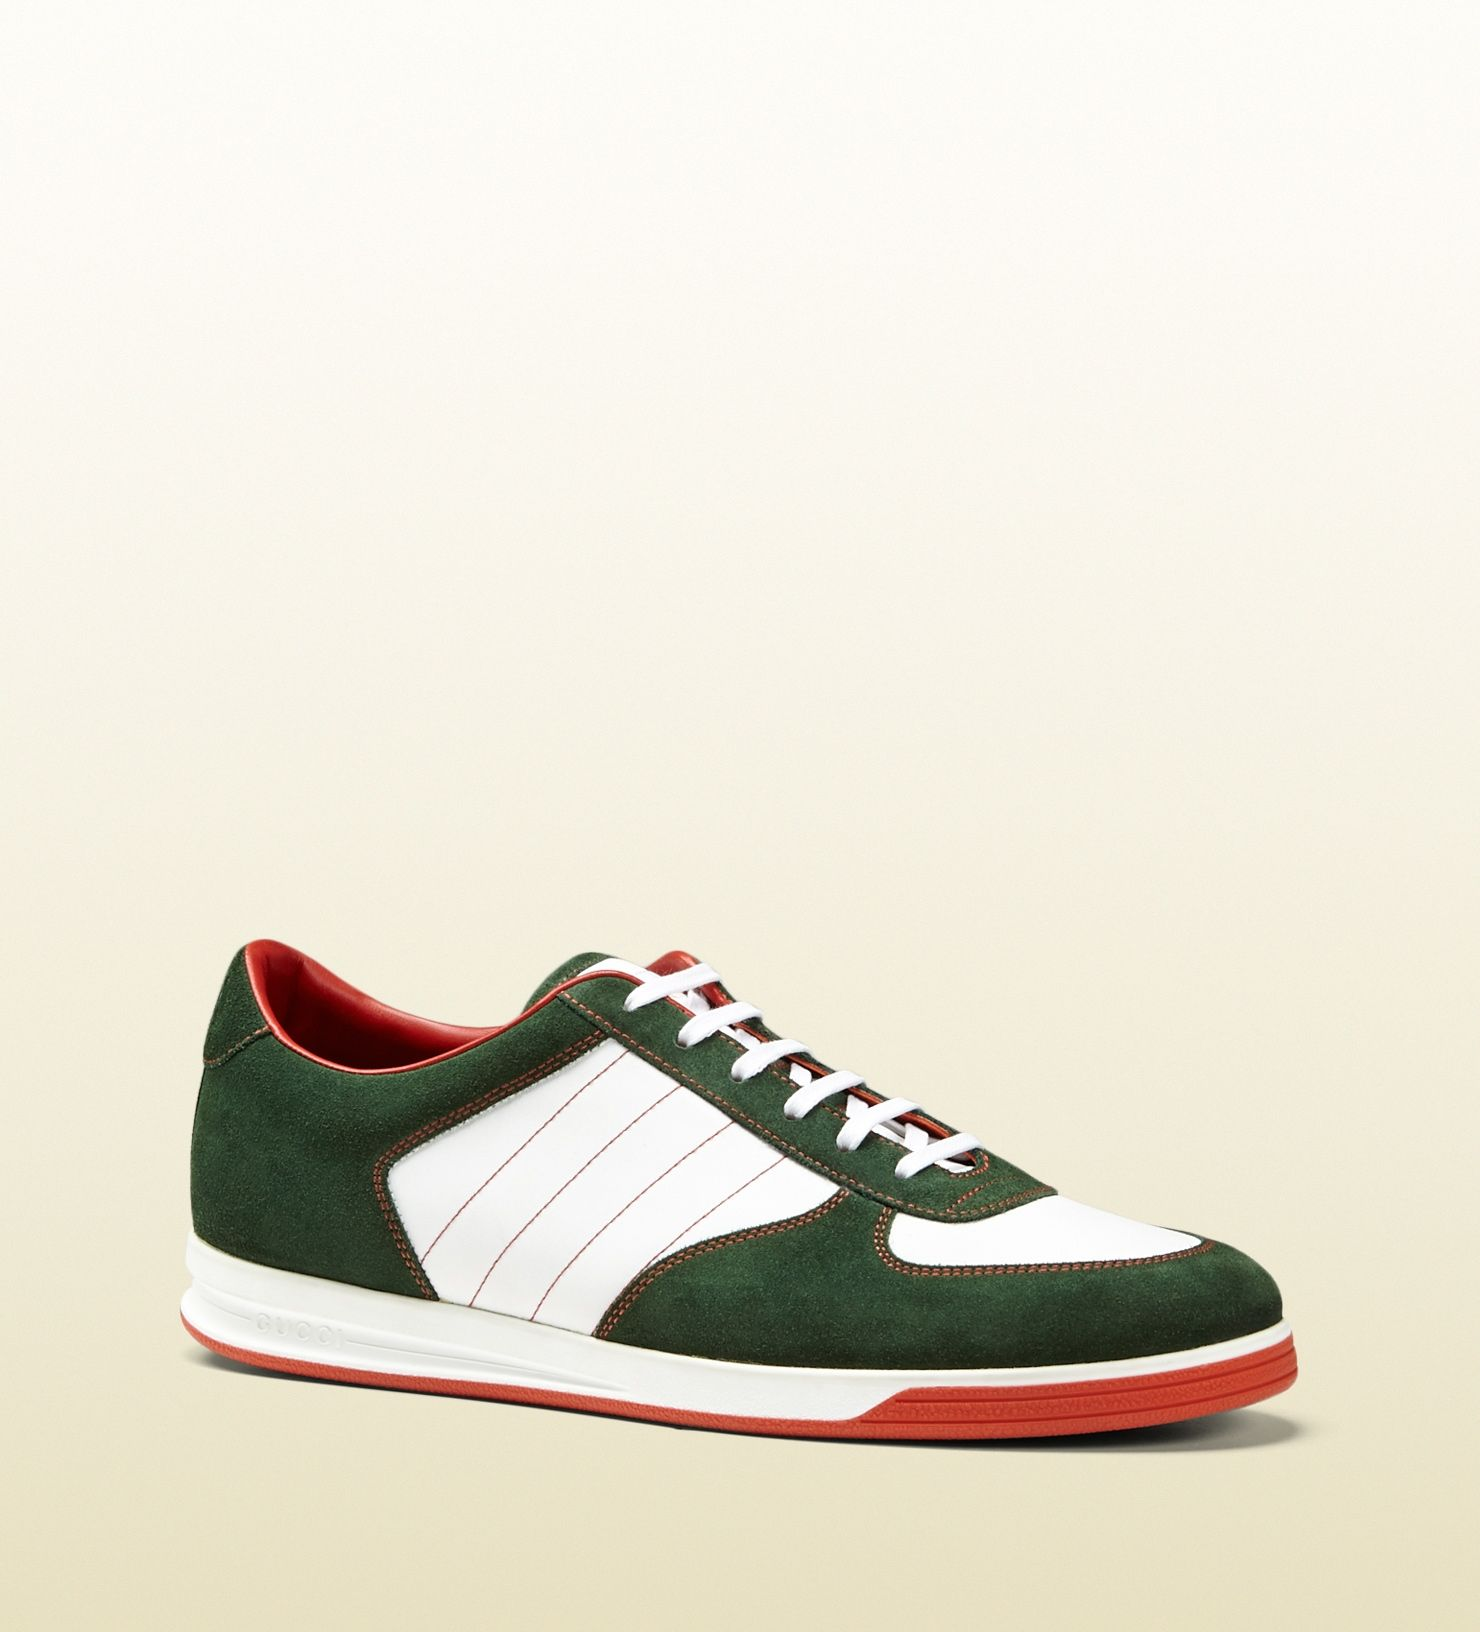 0e0cae3be0f Gucci - 353423 CKKP0 3066 - 1984 low top sneaker in suede - the 1984  collection celebrates the anniversary of the classic low top sneaker green  suede with ...